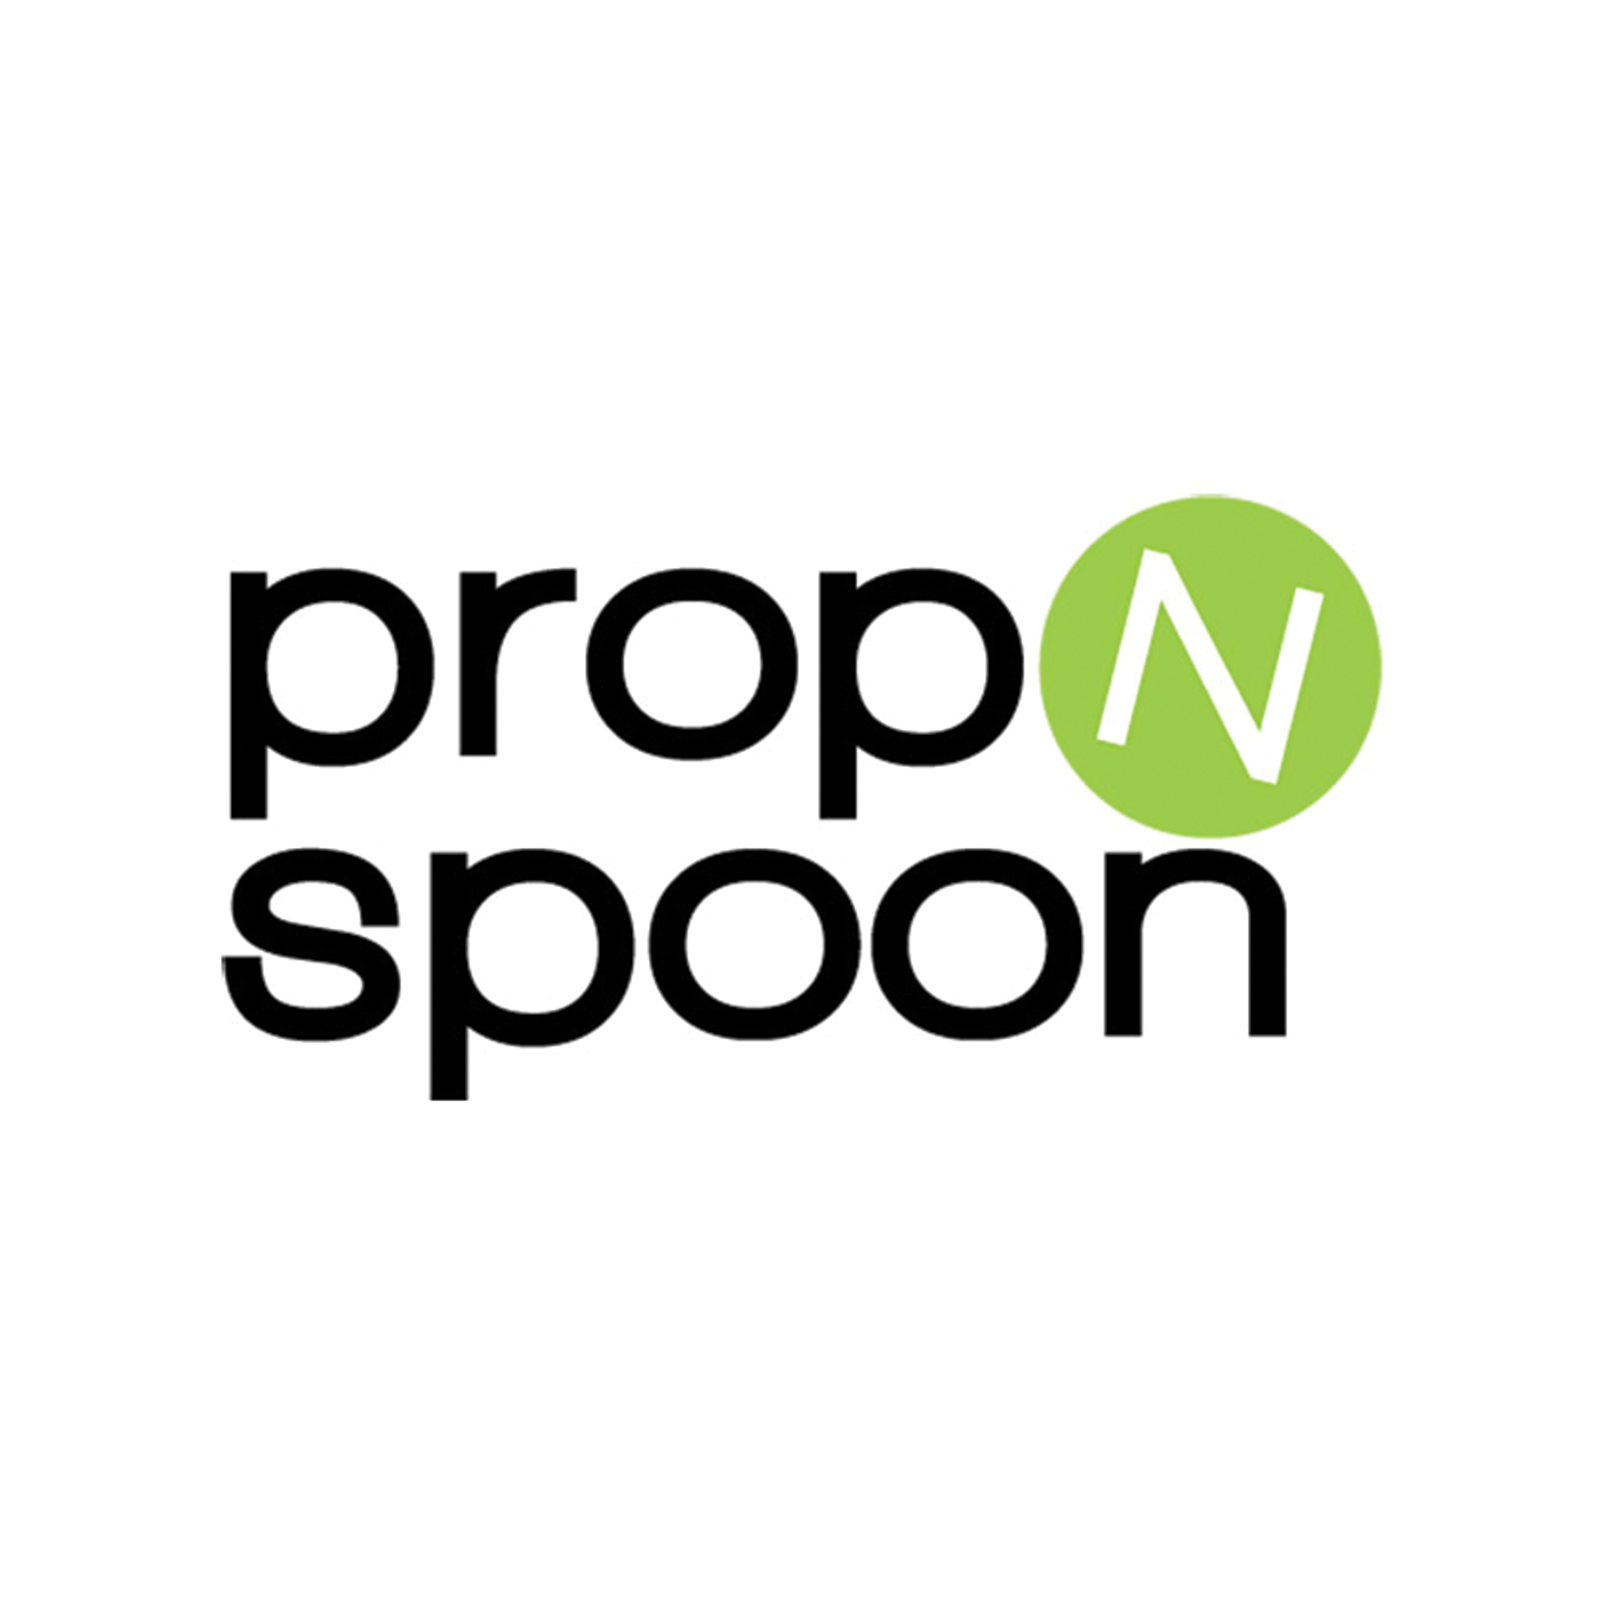 propnspoon.png